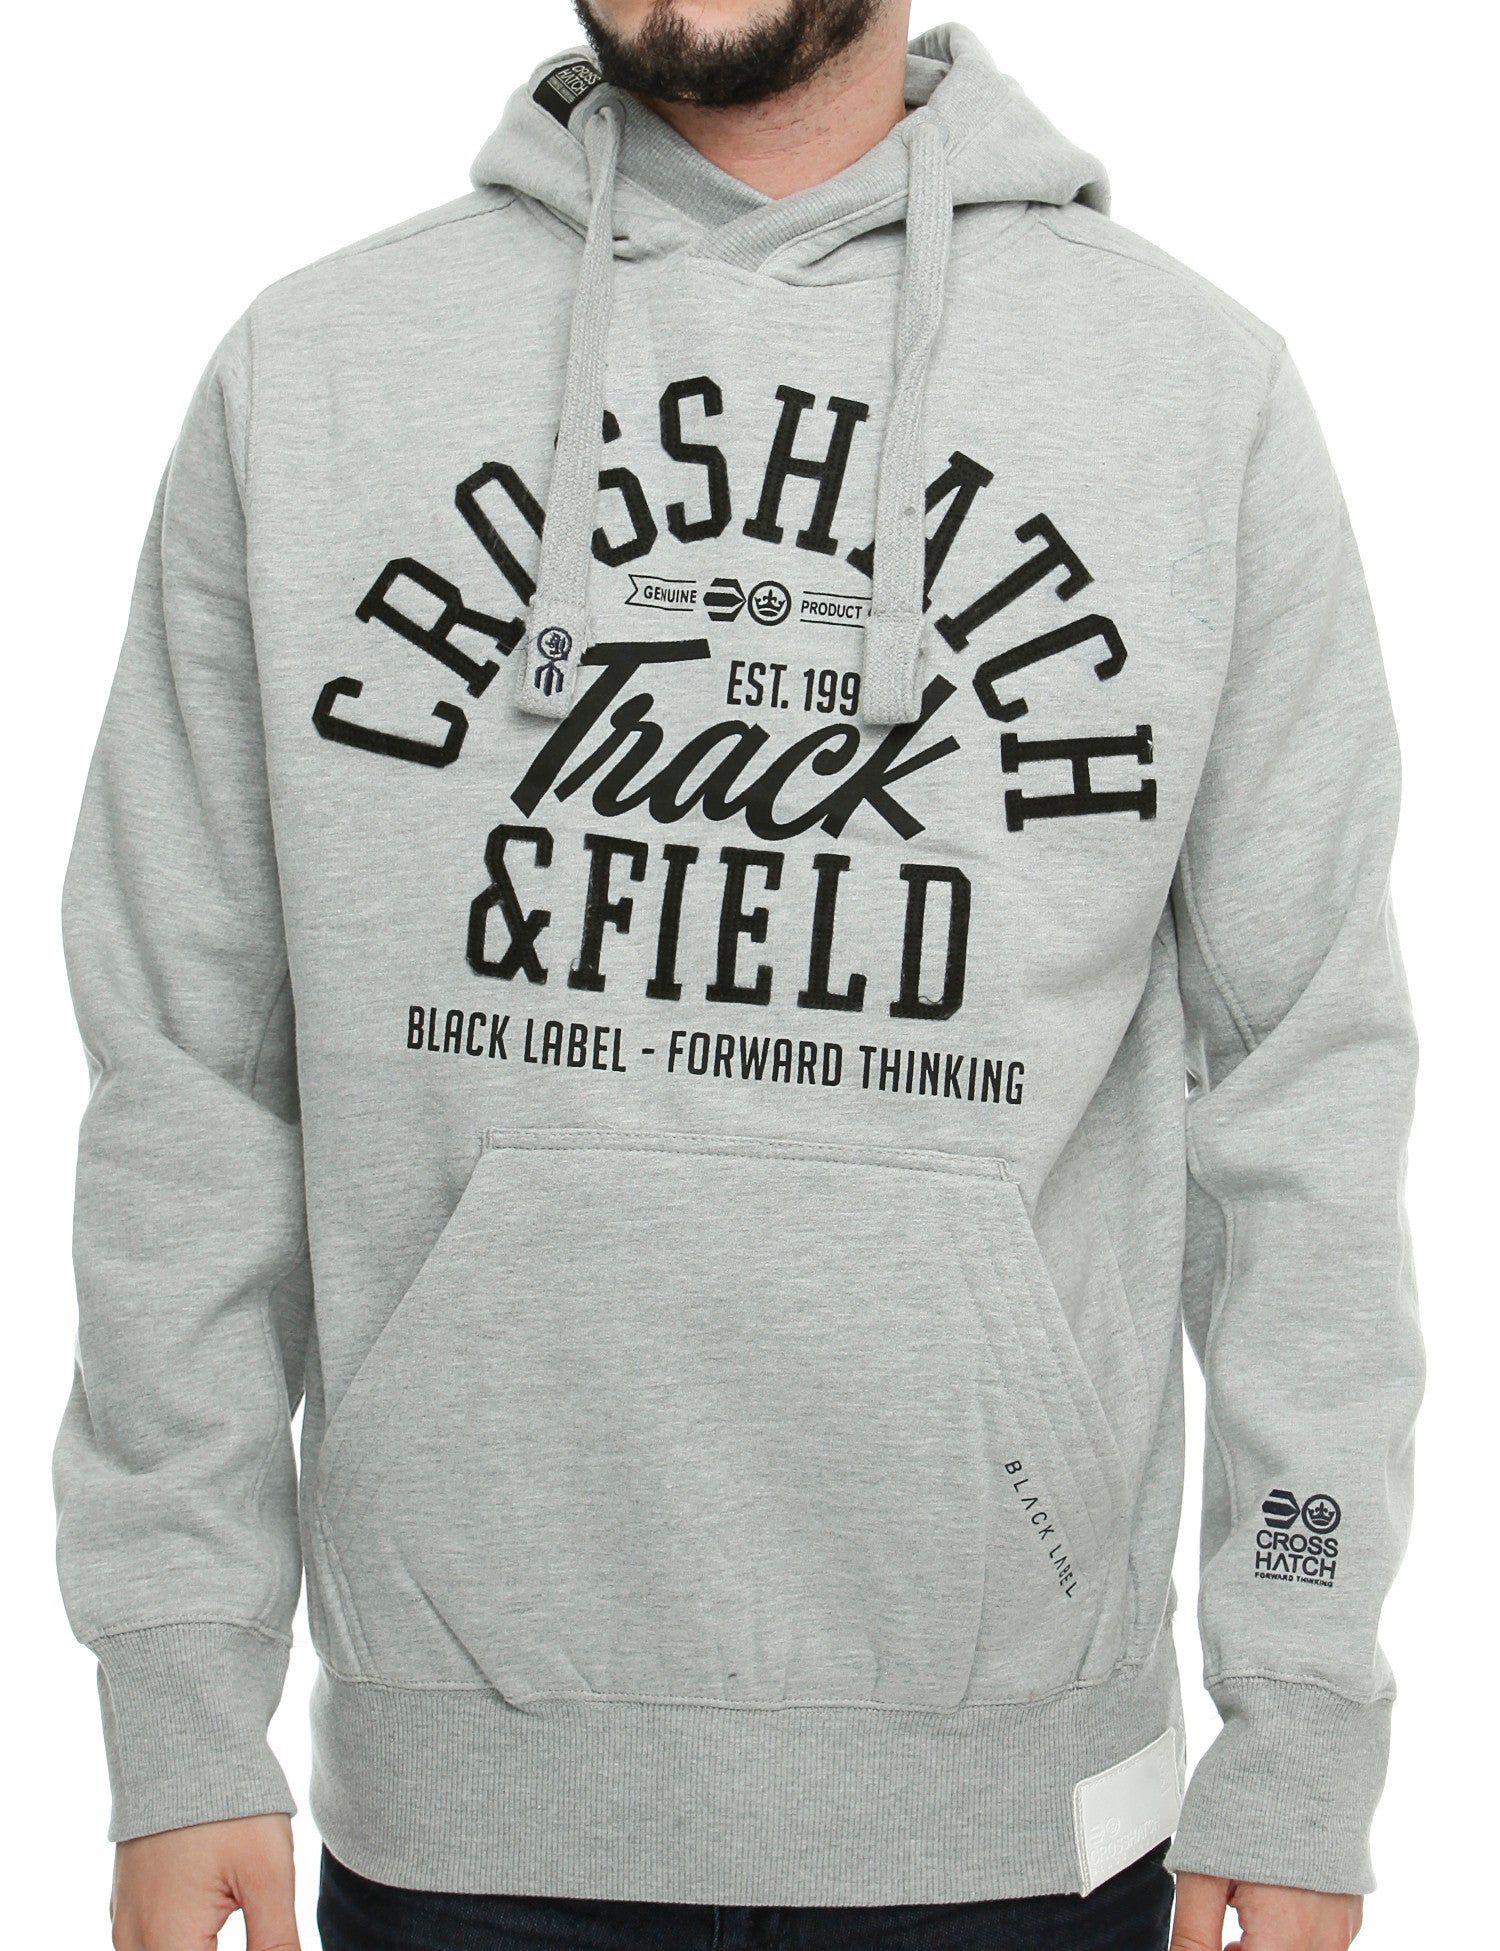 Crosshatch COTTONHAM Hoody CH2E11010399 Grey